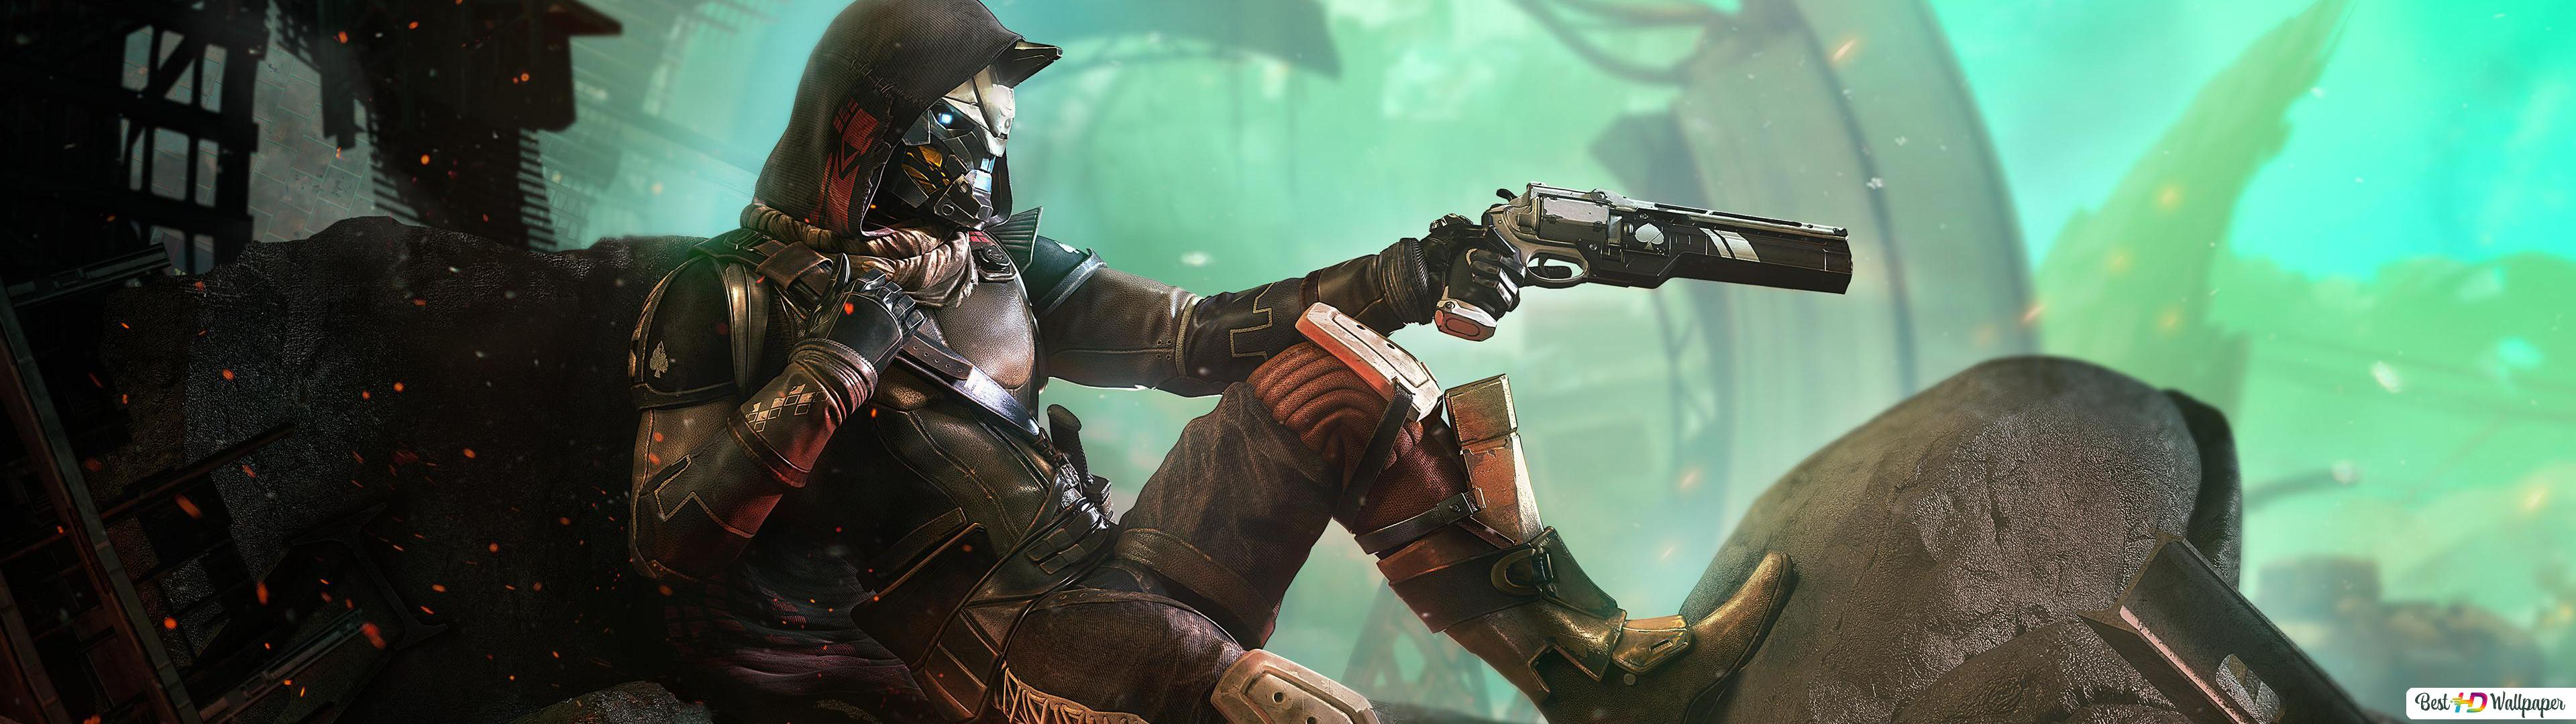 Destiny 2 Game Cayde 6 Hd Wallpaper Download